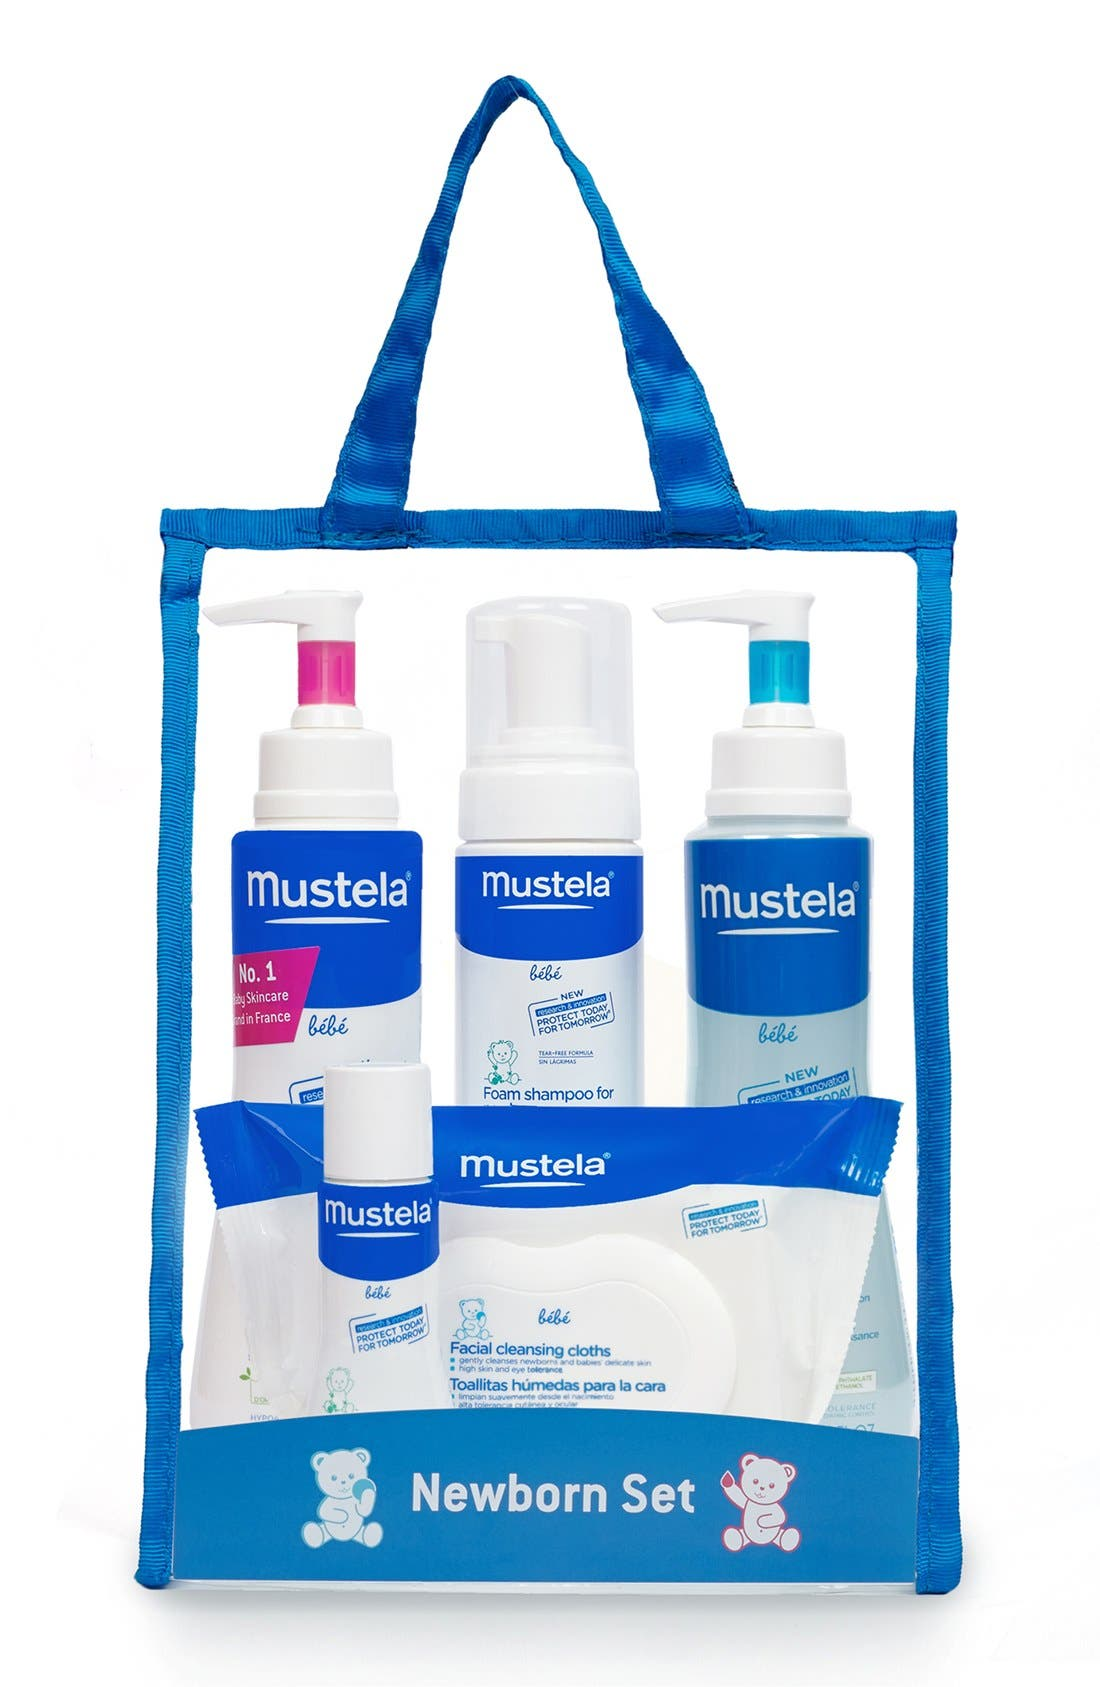 MUSTELA® Newborn Set